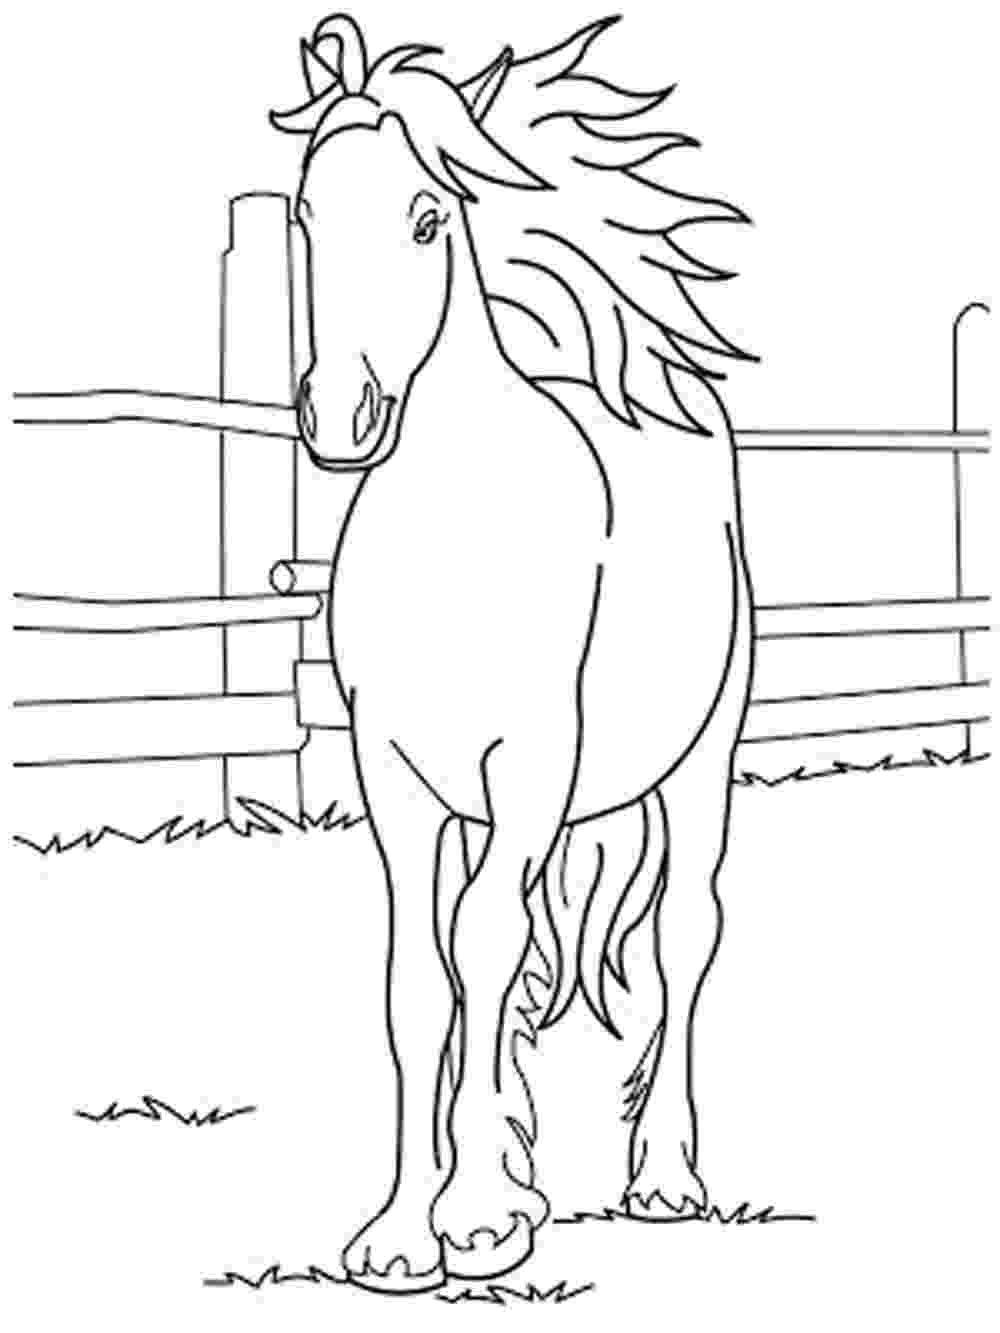 colouring pages horses horse to print and color pages 2 color horse coloring pages horses colouring